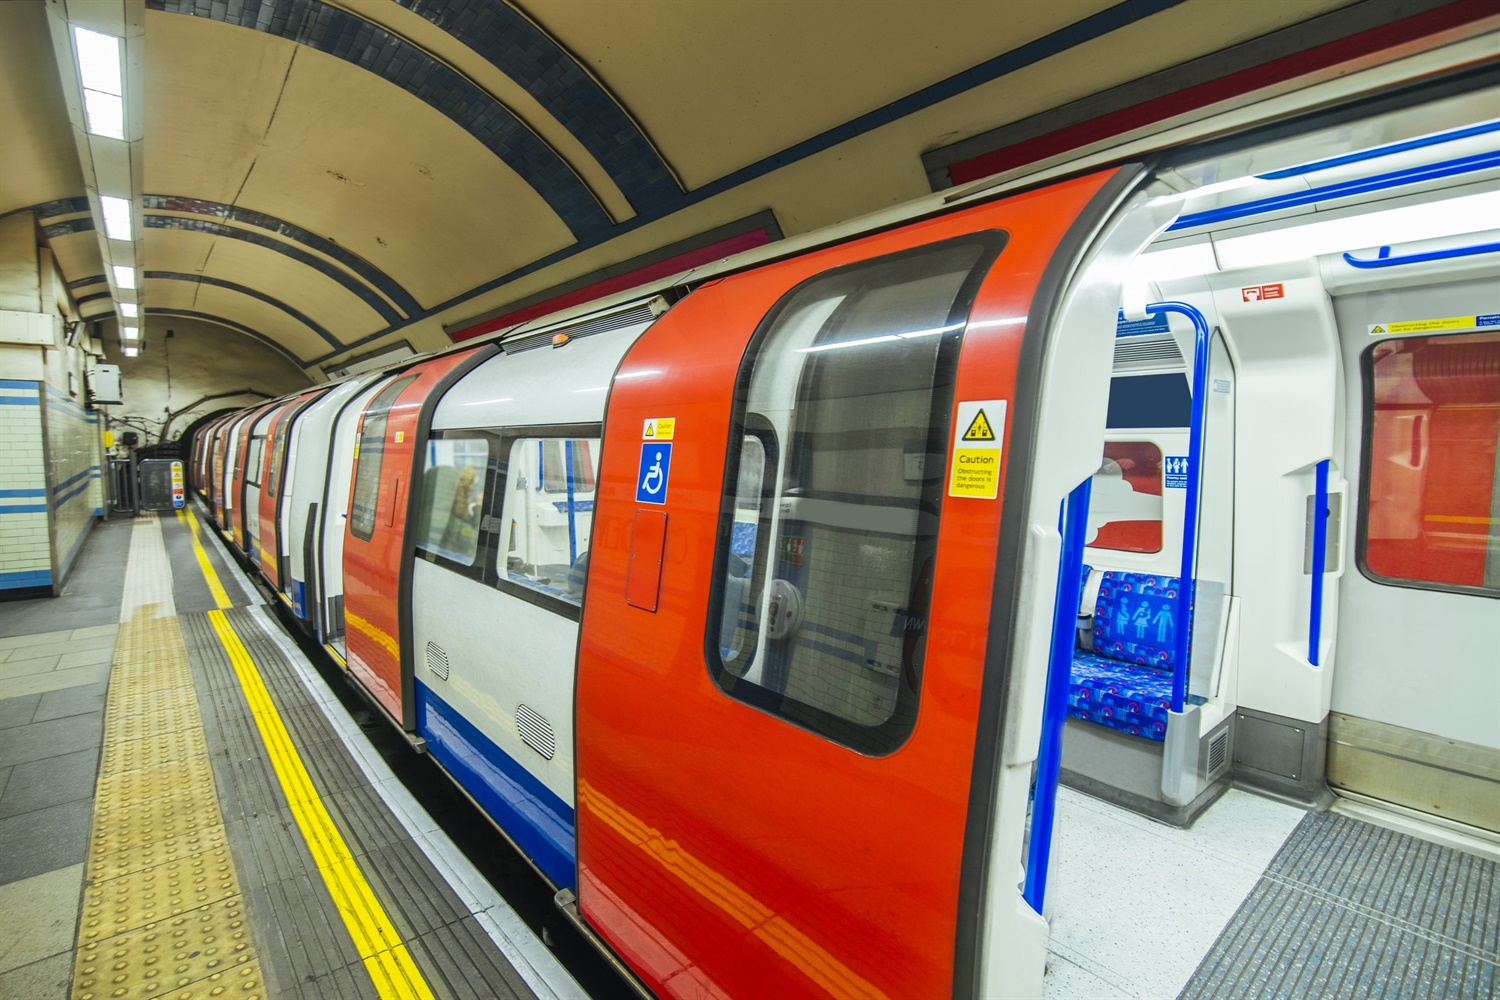 TfL to receive £1.9bn bailout from Government